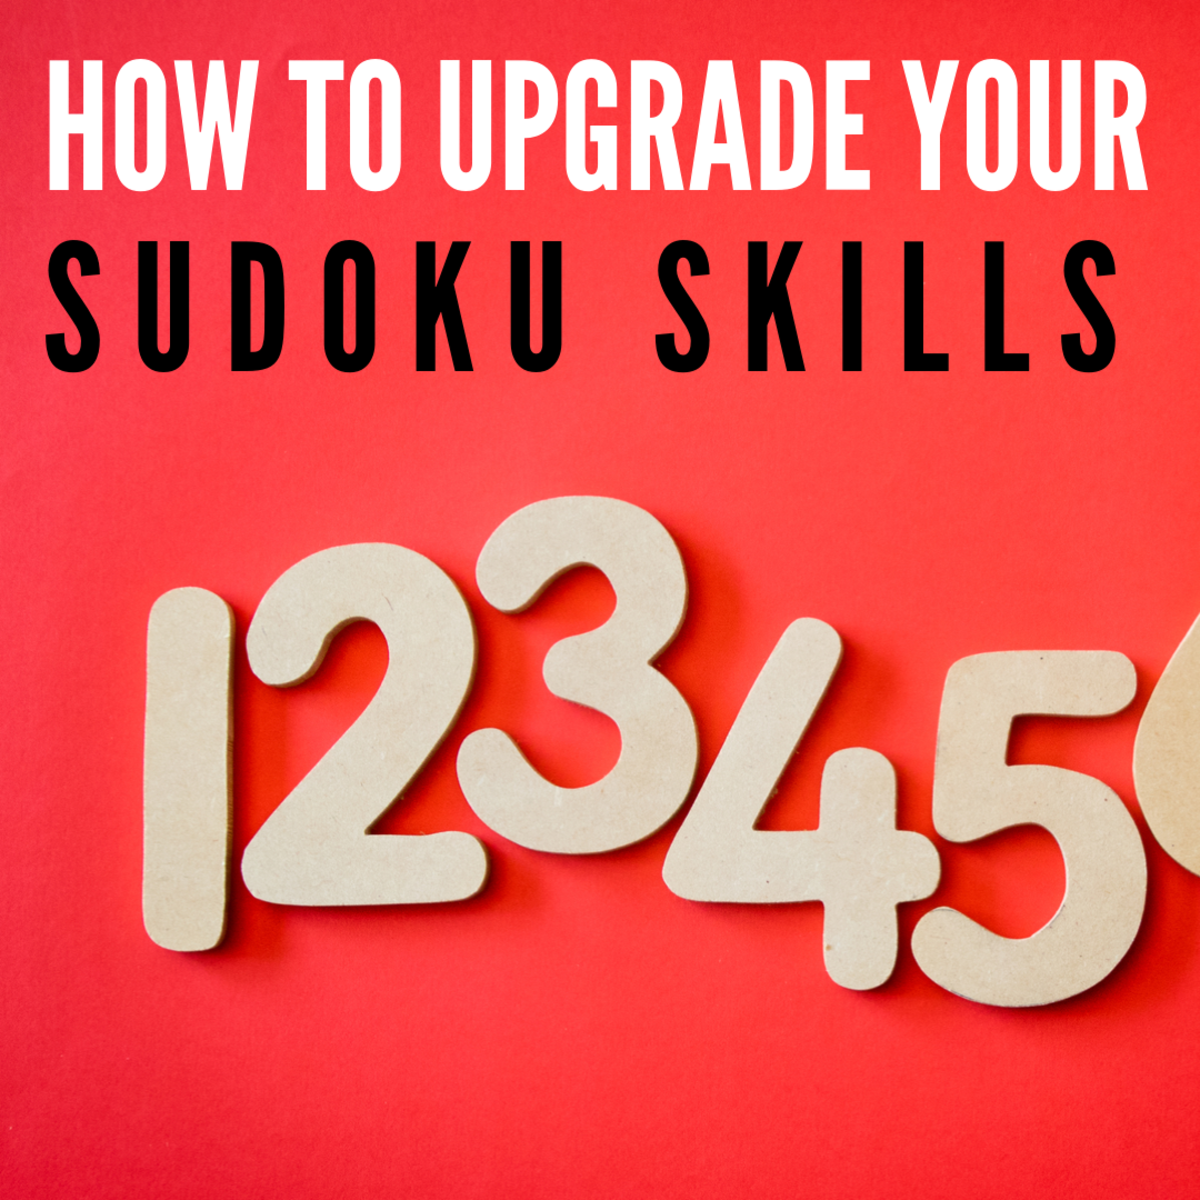 Upgrade Your Skills in Sudoku: Medium and Hard Sudoku Solving Tips With Sample Videos